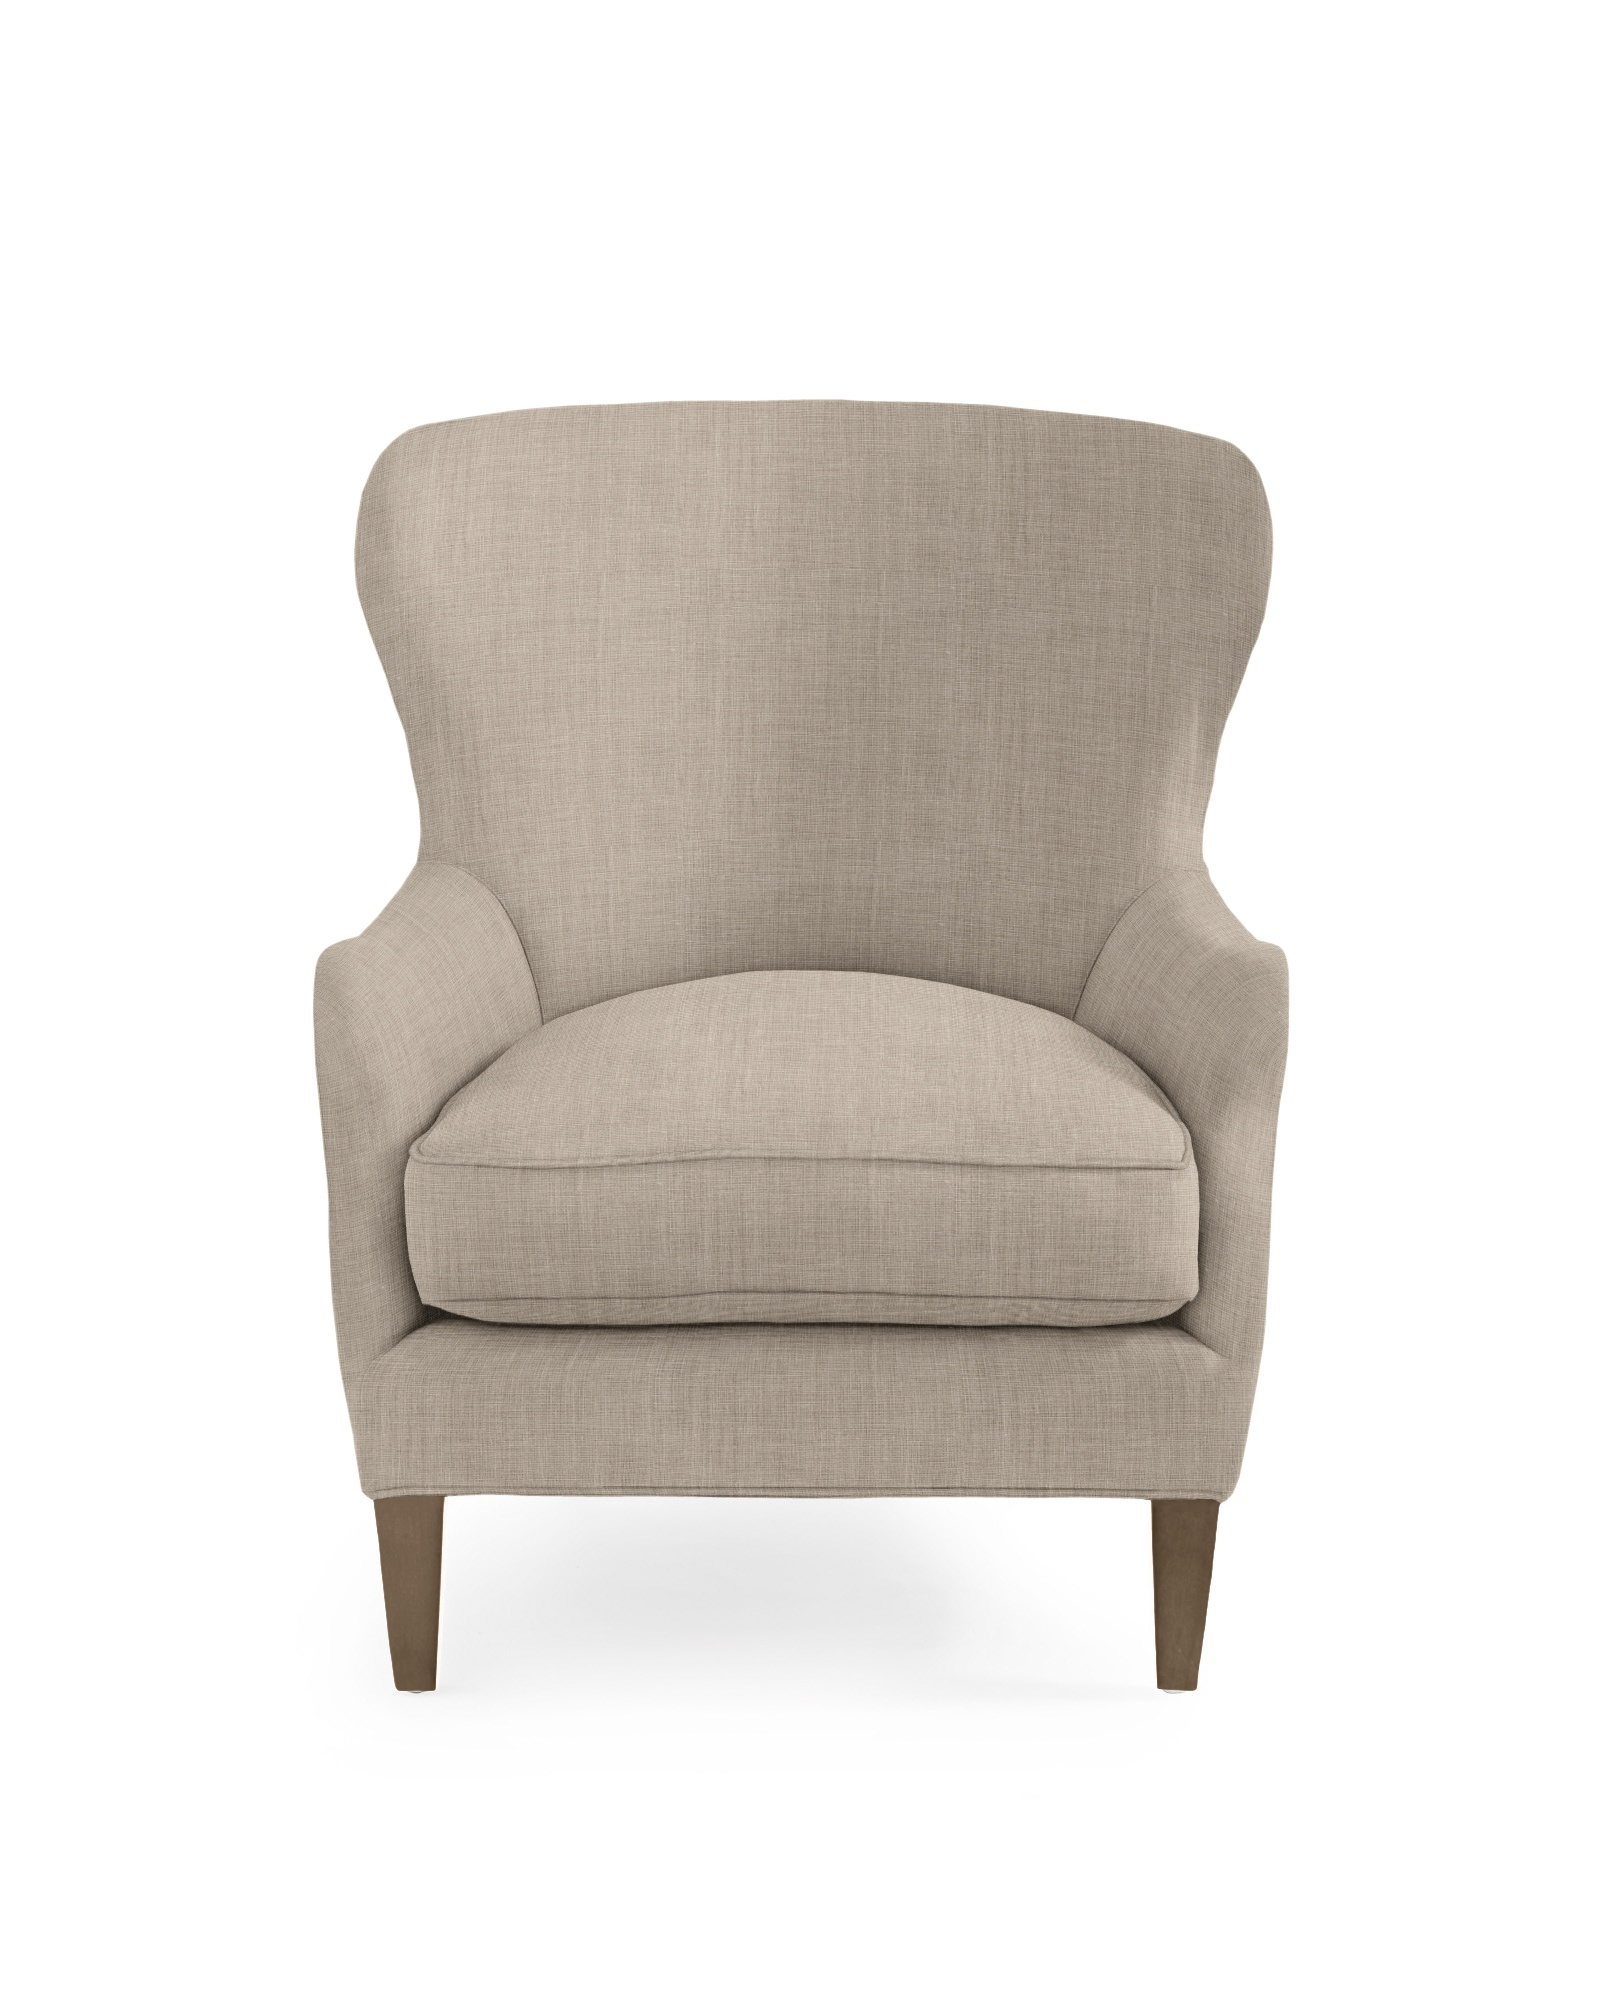 Thompson Wing Chair - Twine Washed Linen,